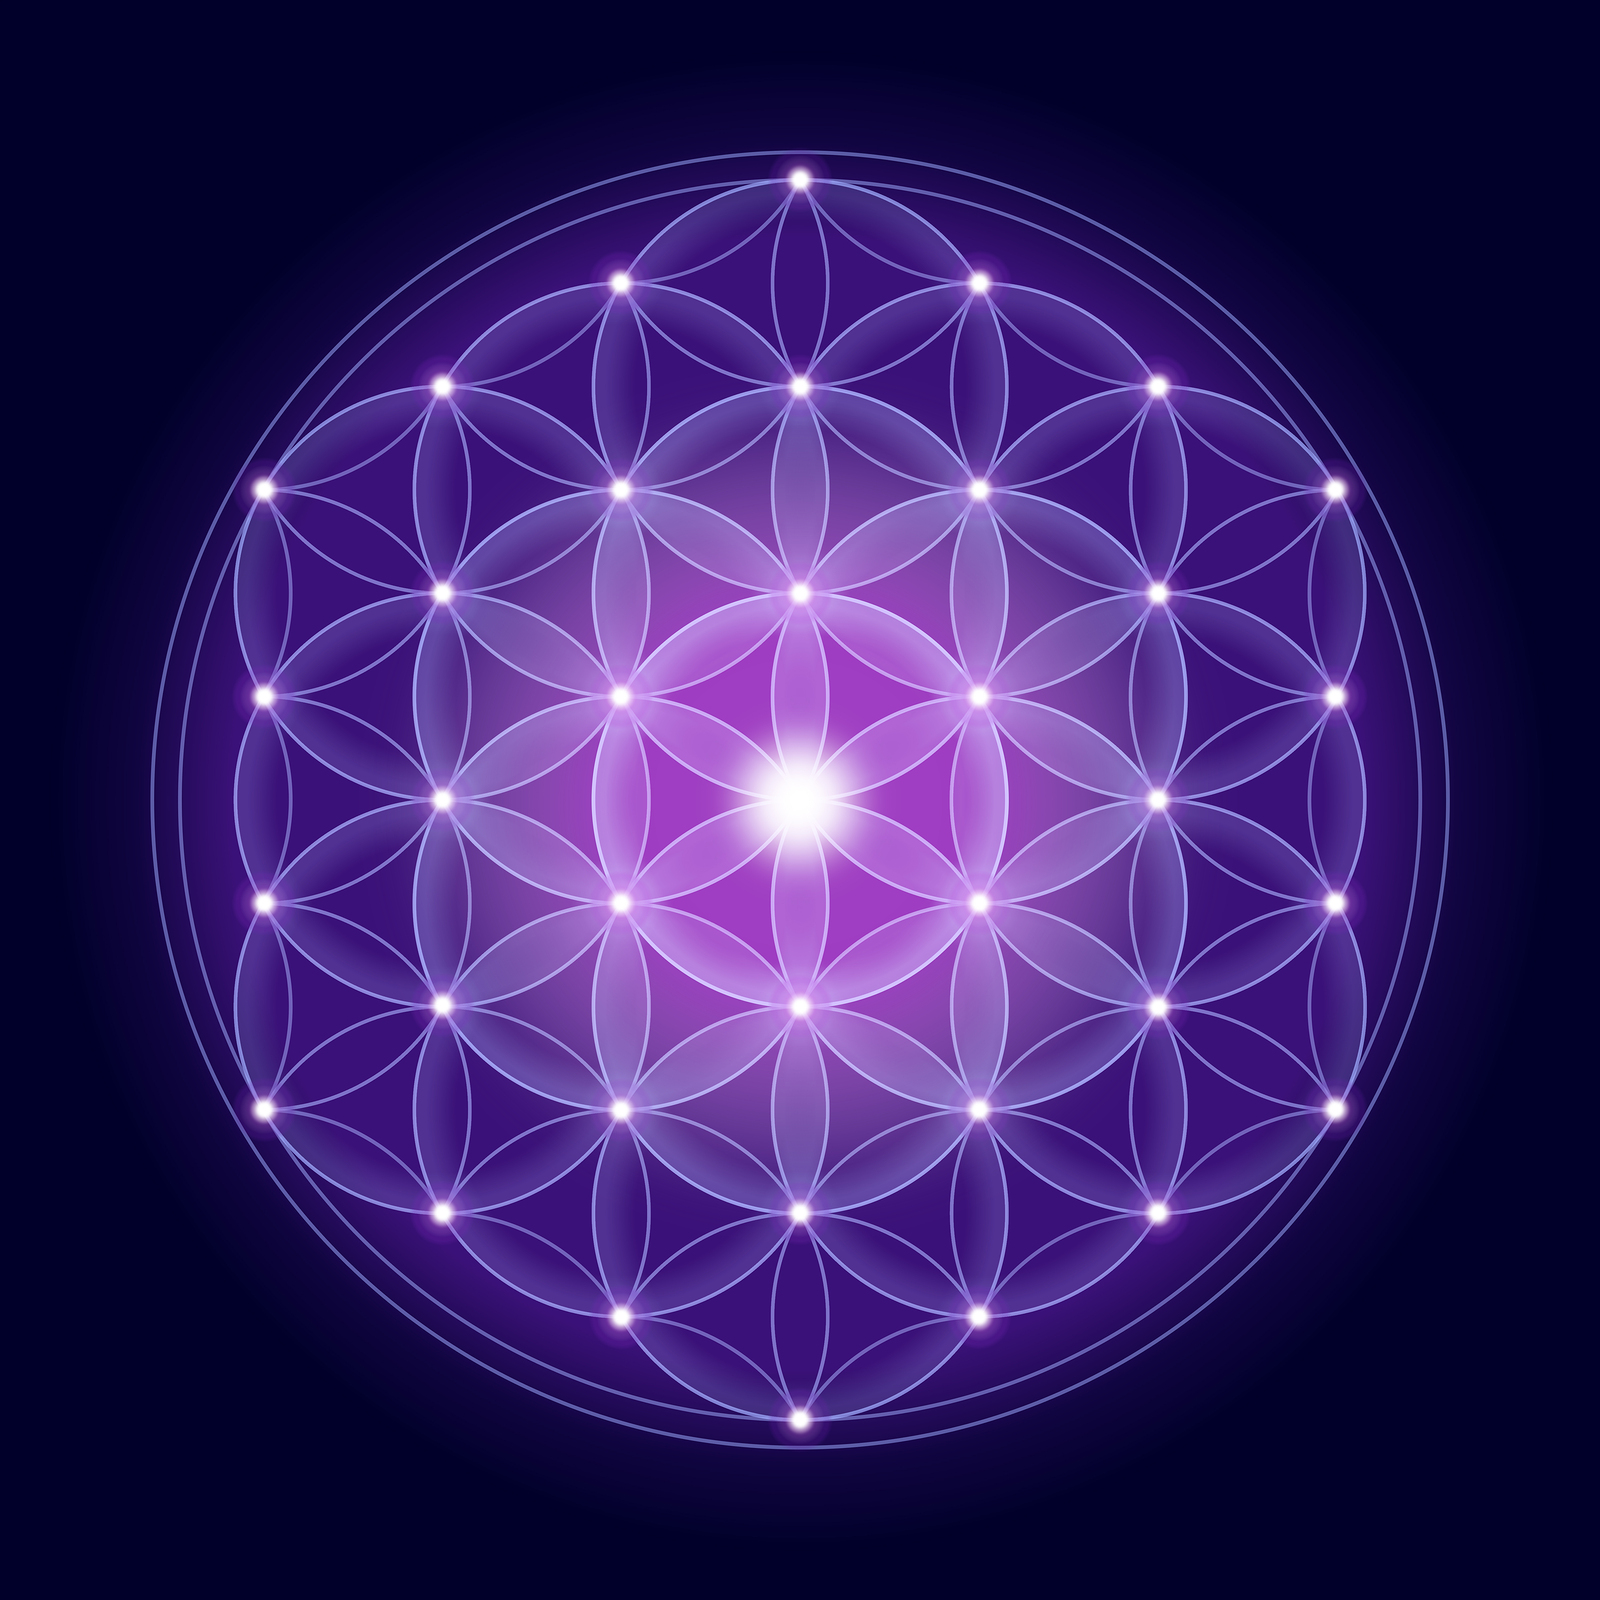 Bright Flower of Life with stars on dark blue/purple background, a spiritual symbol and icon of Sacred Geometry since ancient times.